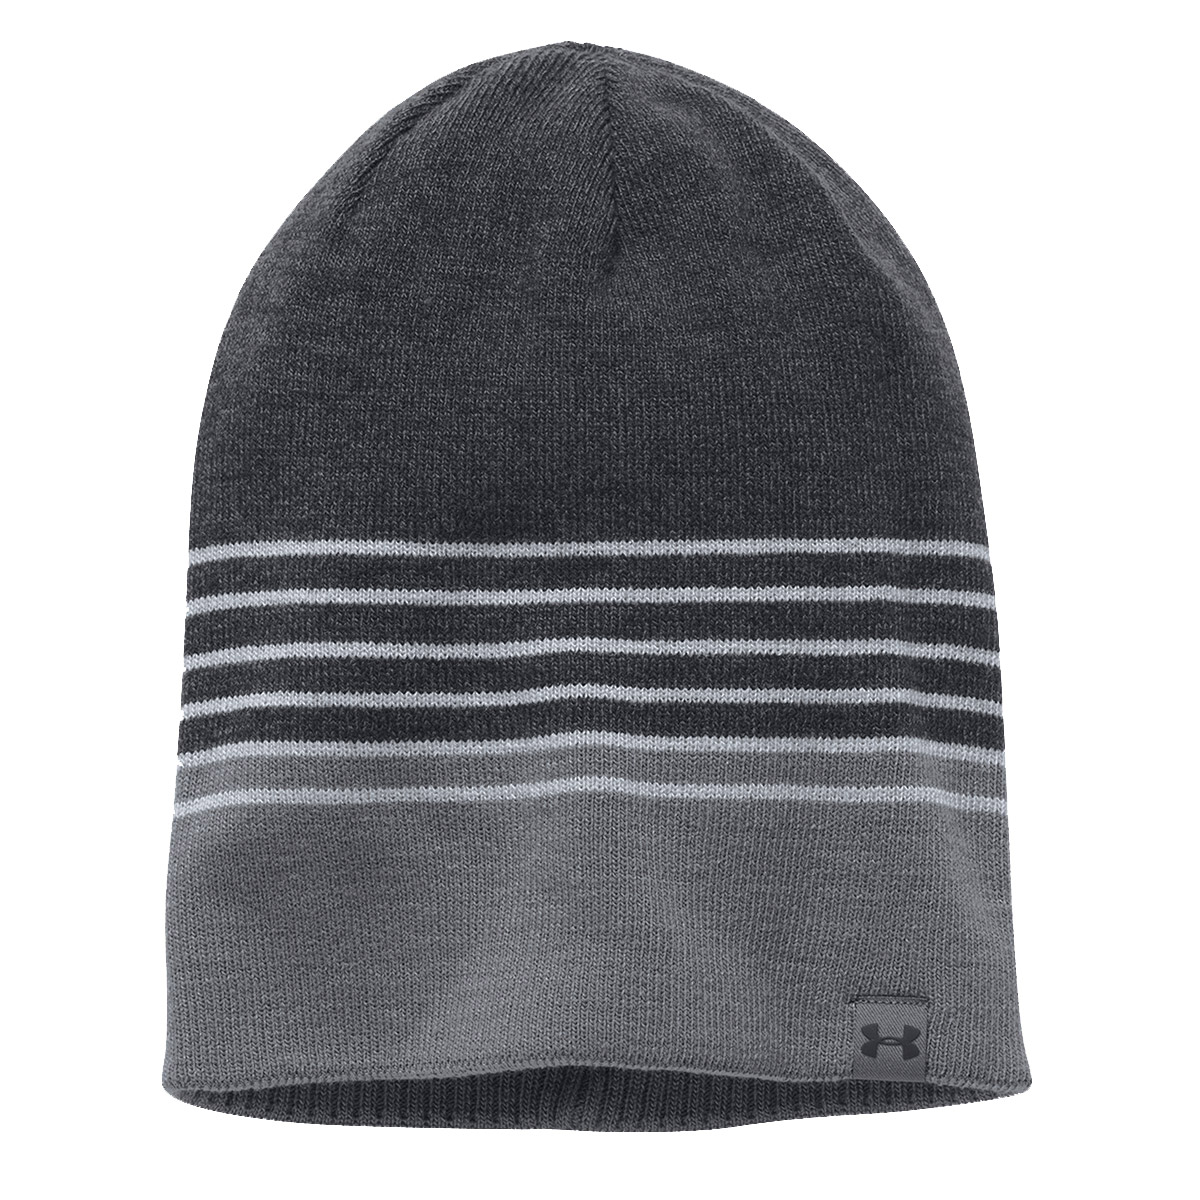 a980afa6f Under Armour 4-In-1 2.0 Beanie